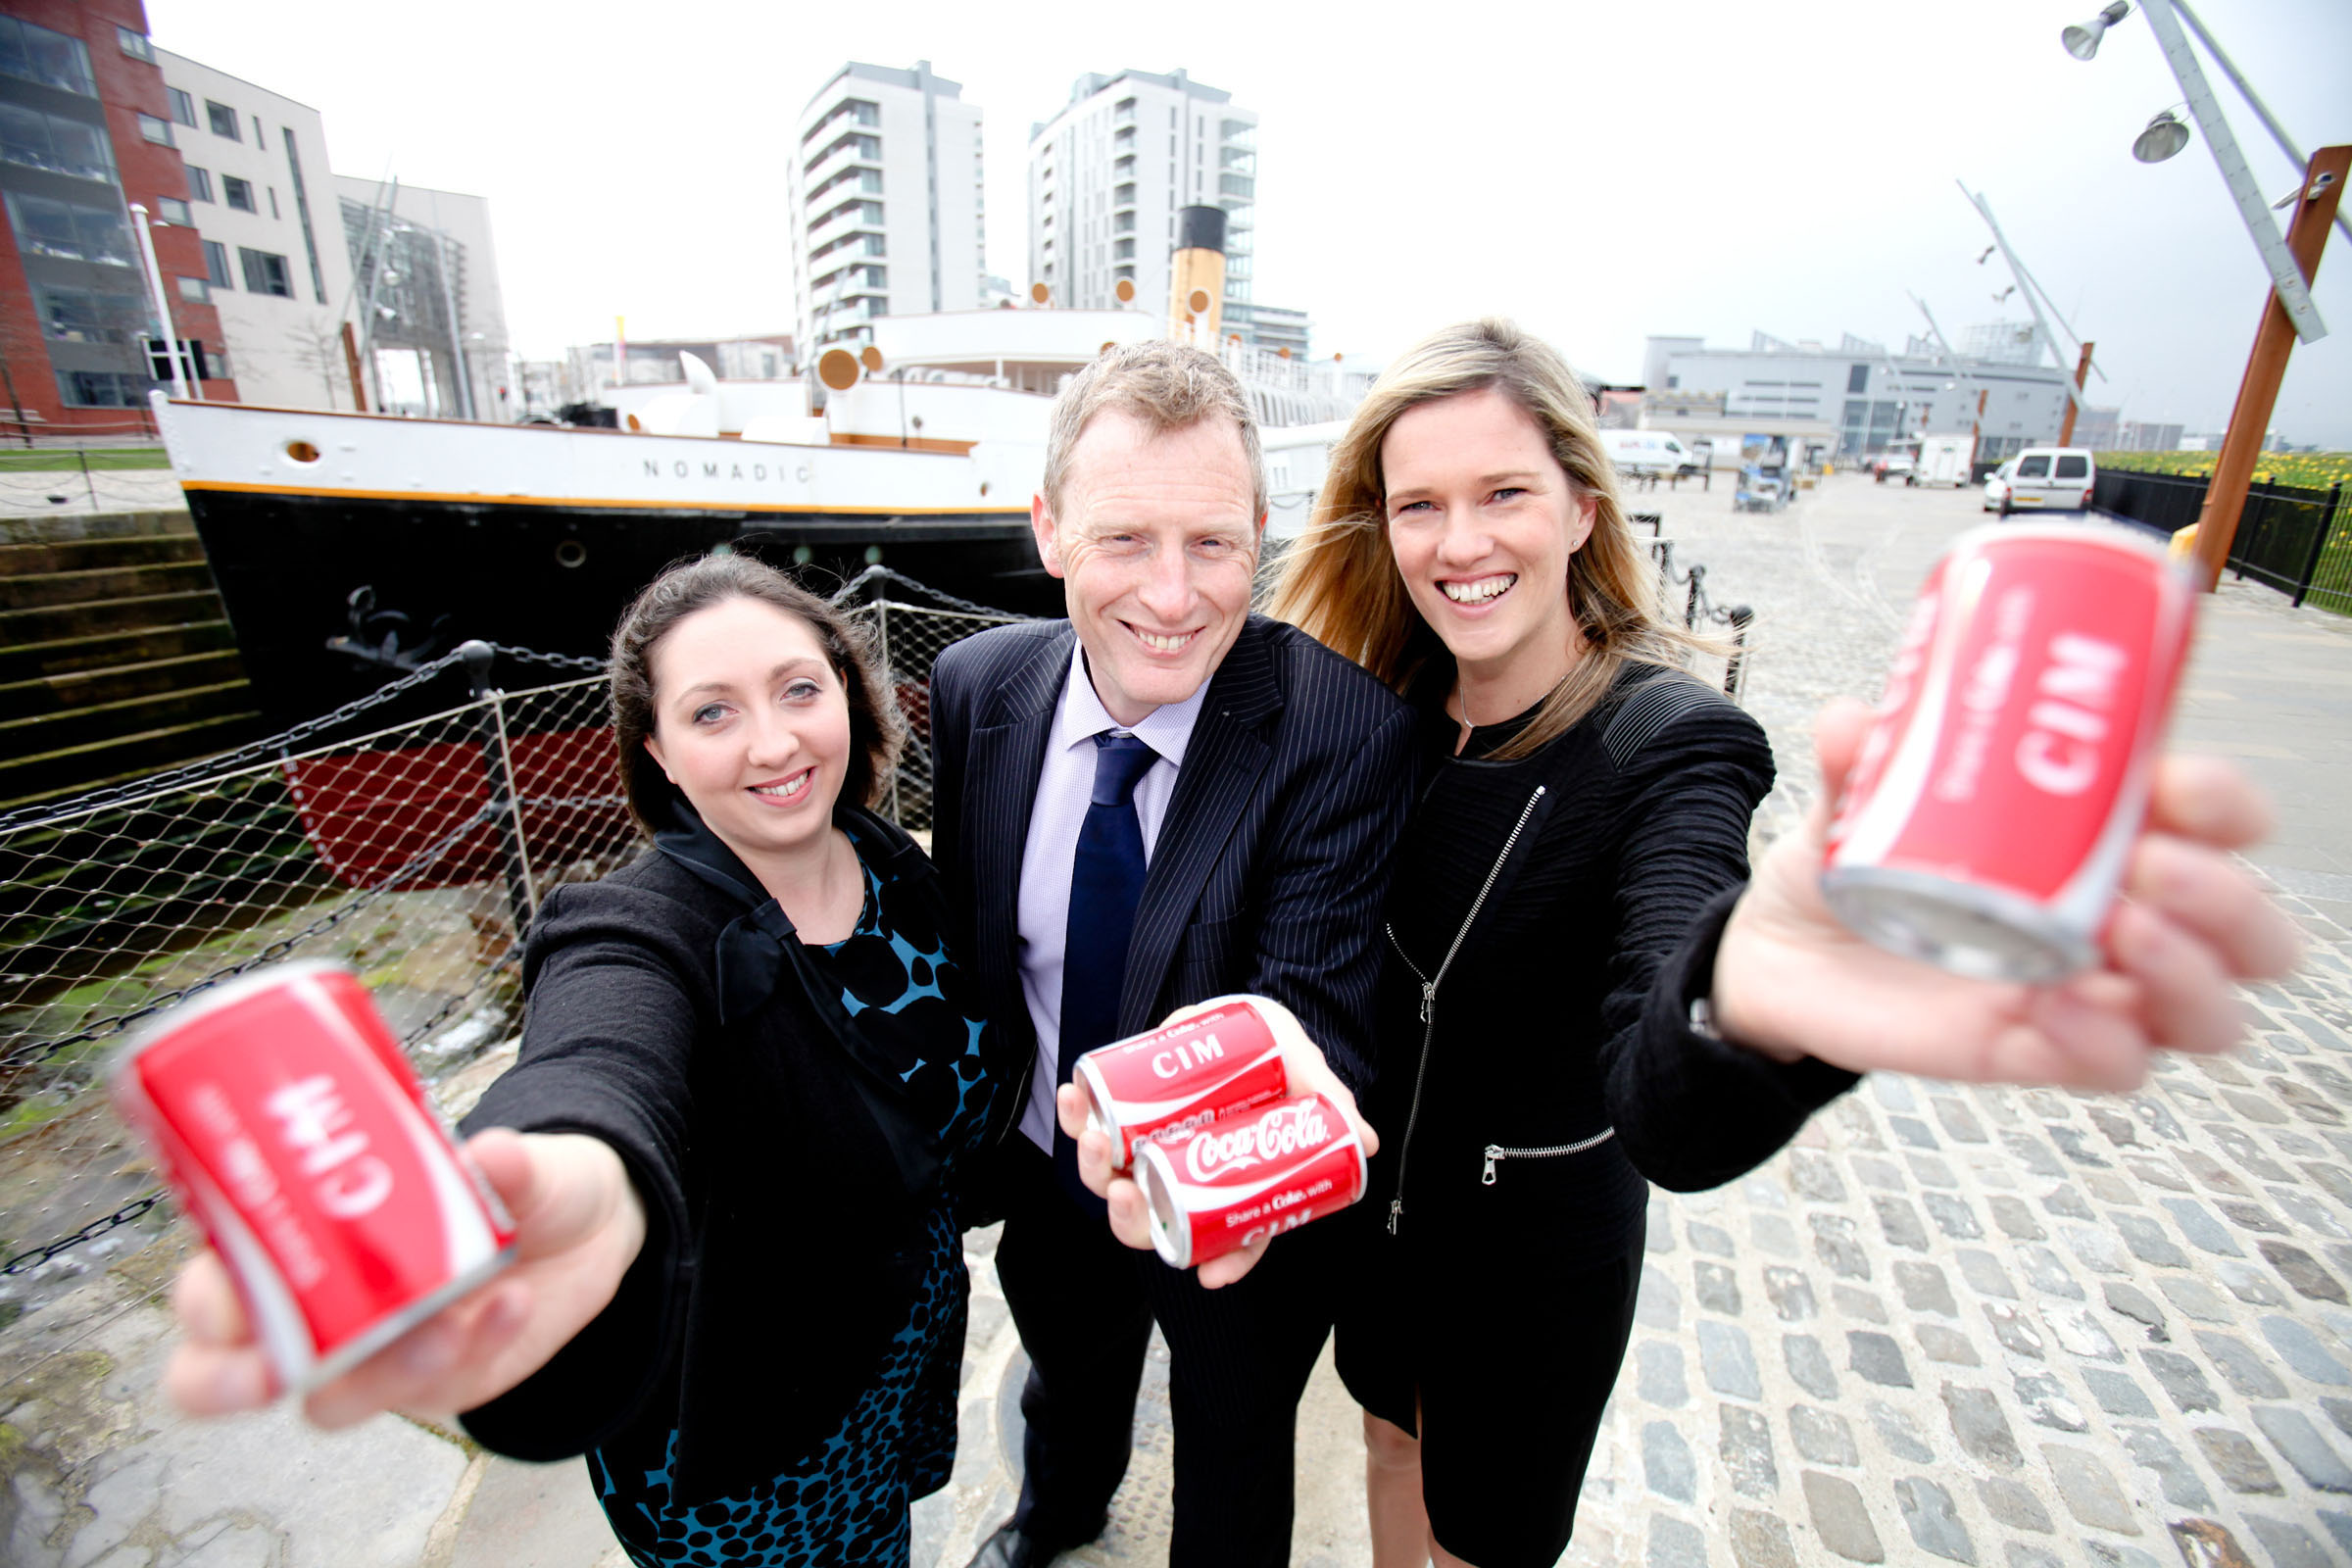 Marketing Head 'Shares a Coke' at CIM Chair's Lunch